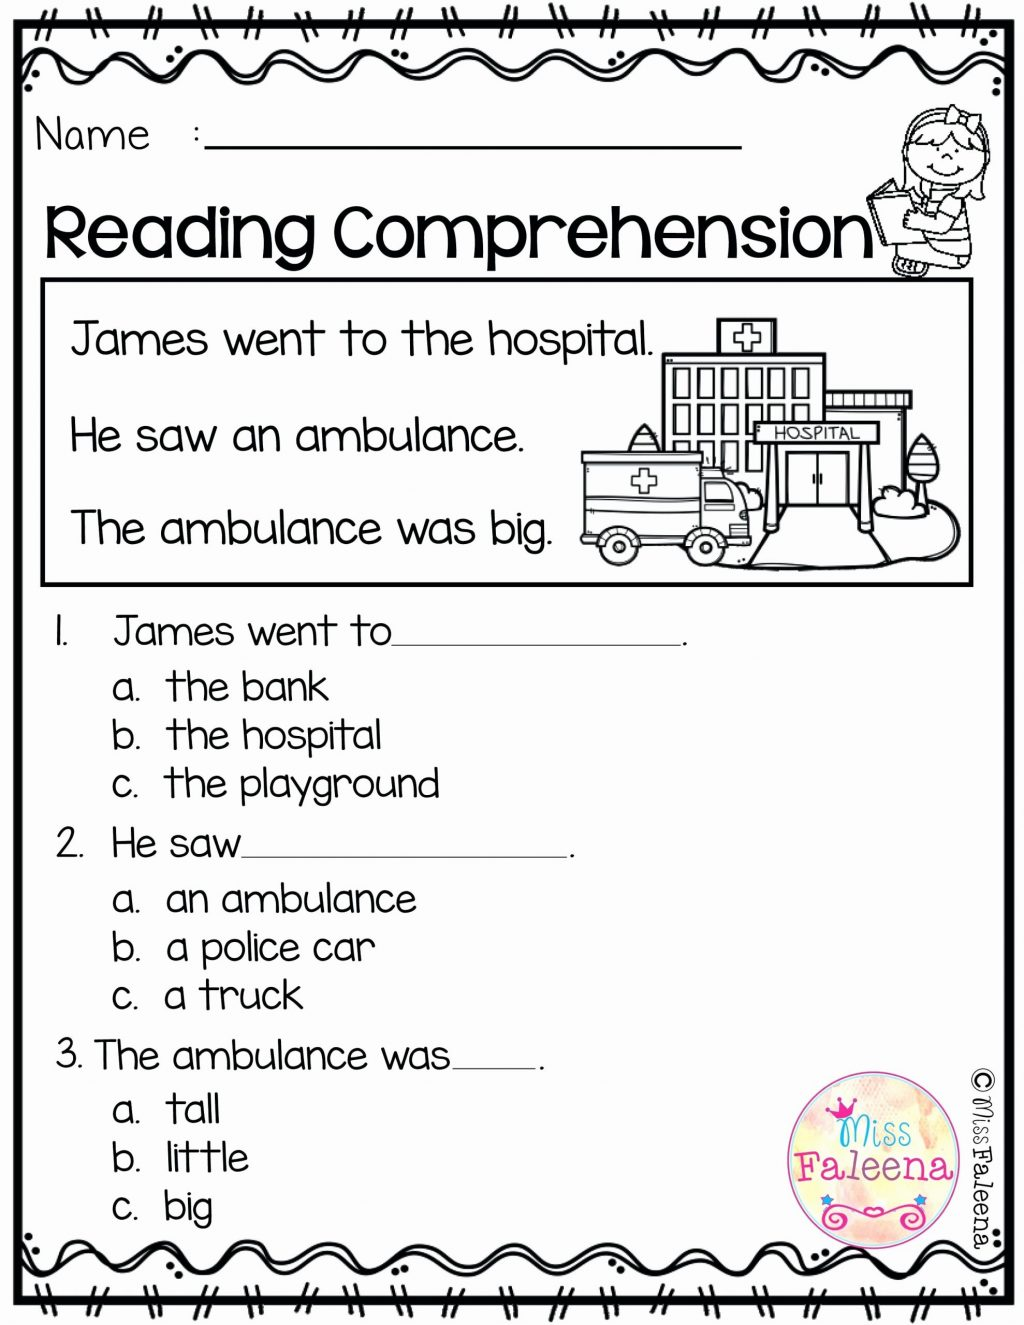 Kindergarten Reading Comprehension Worksheets Pdf Free